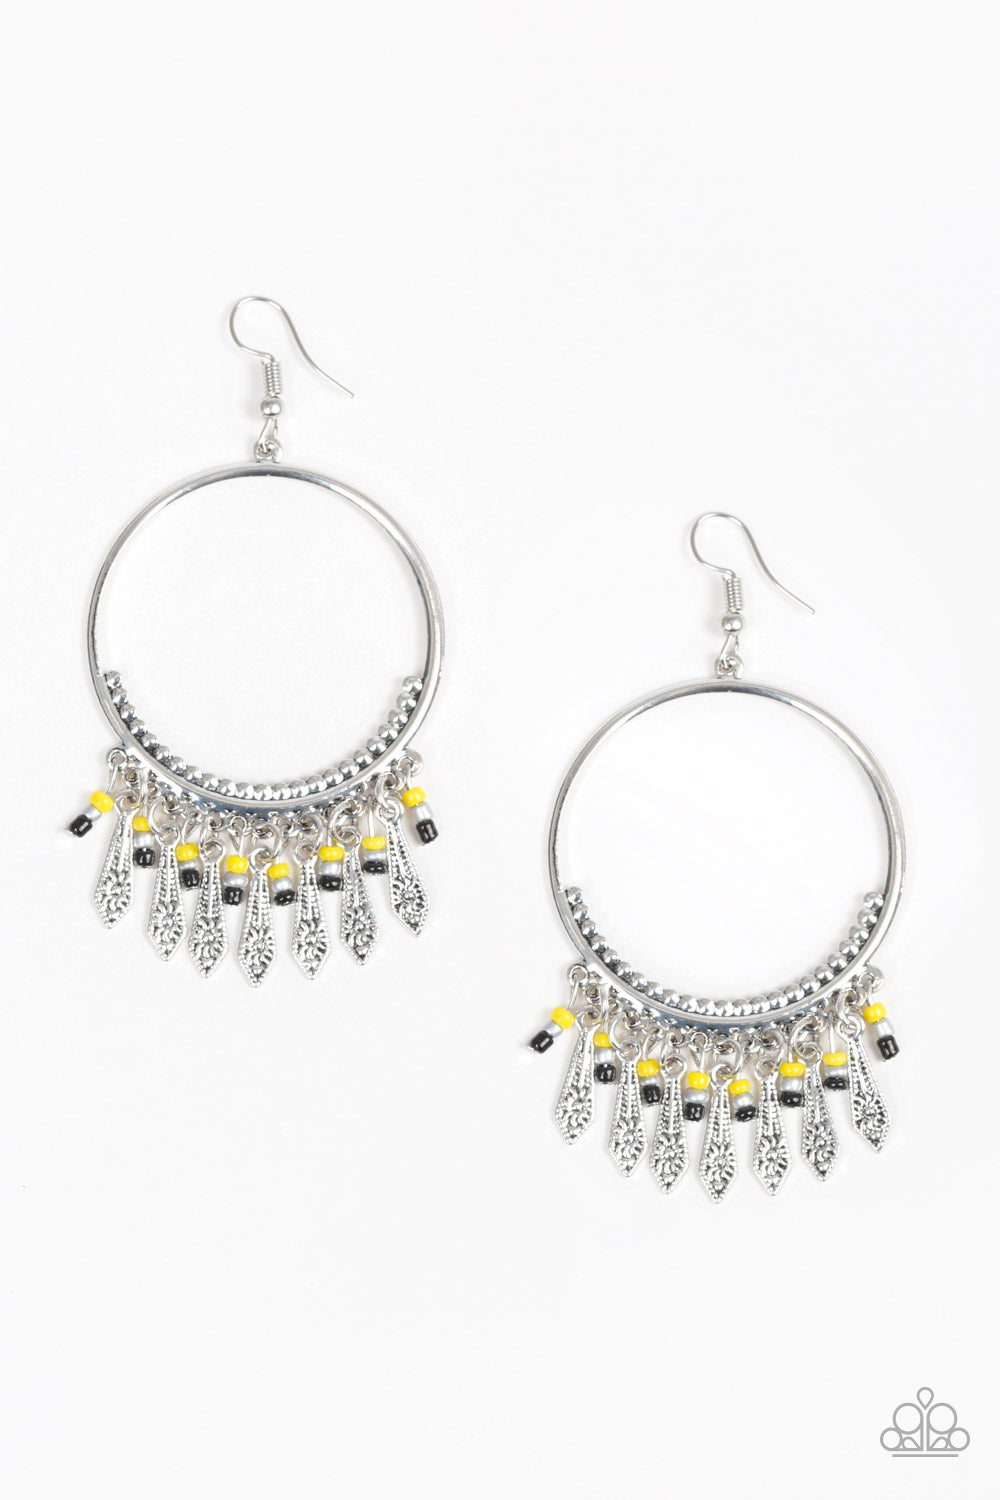 9aade26394bc9 Paparazzi Floral Serenity - Yellow - Silver Tassels Hoop Earrings